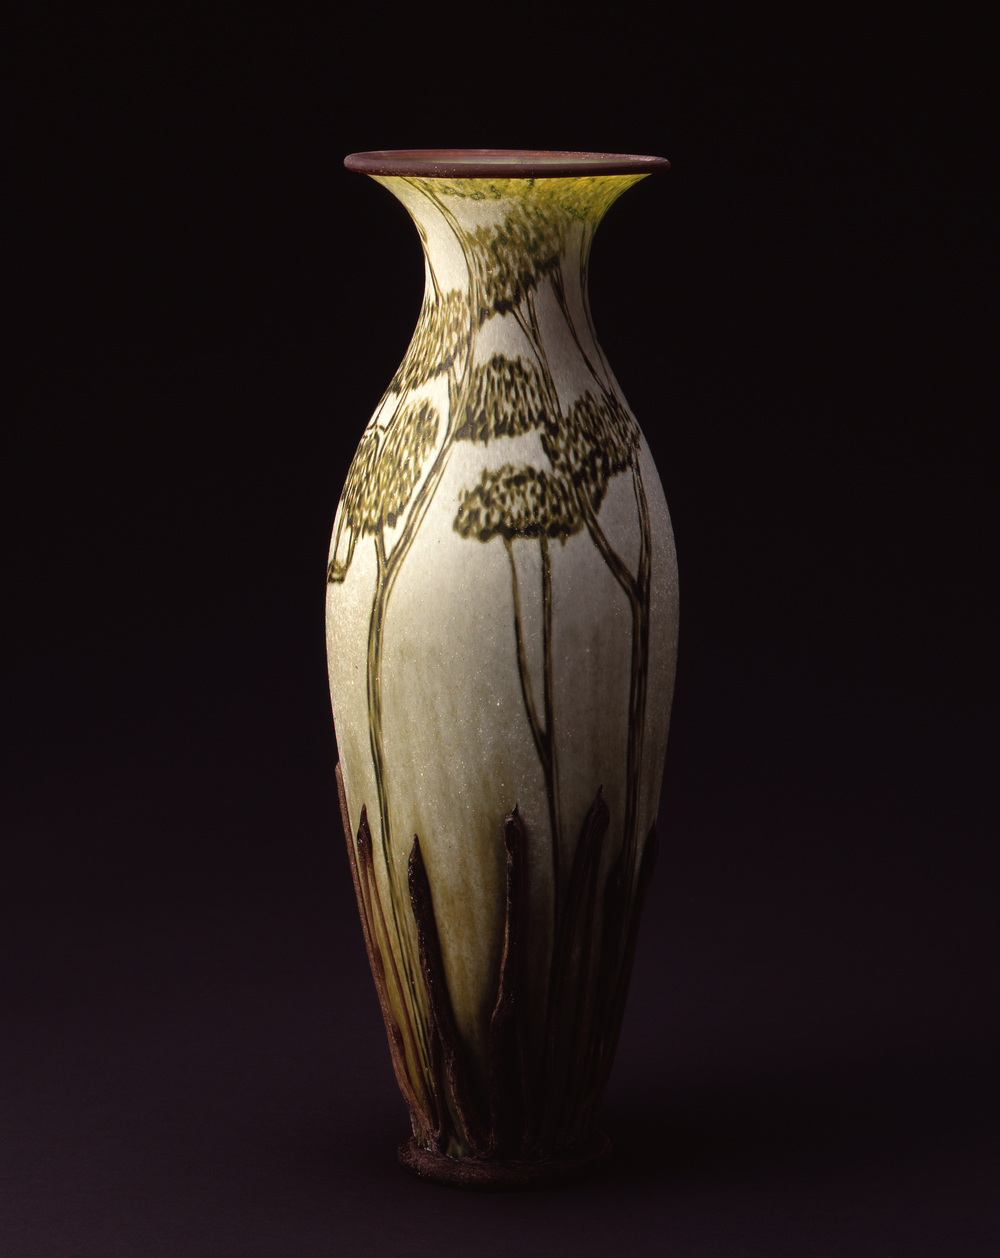 William Morris,  Vase with Trees and Pods  (2004, glass, 18 1/4 x 6 3/8 x 6 3/8 inches), WM.26